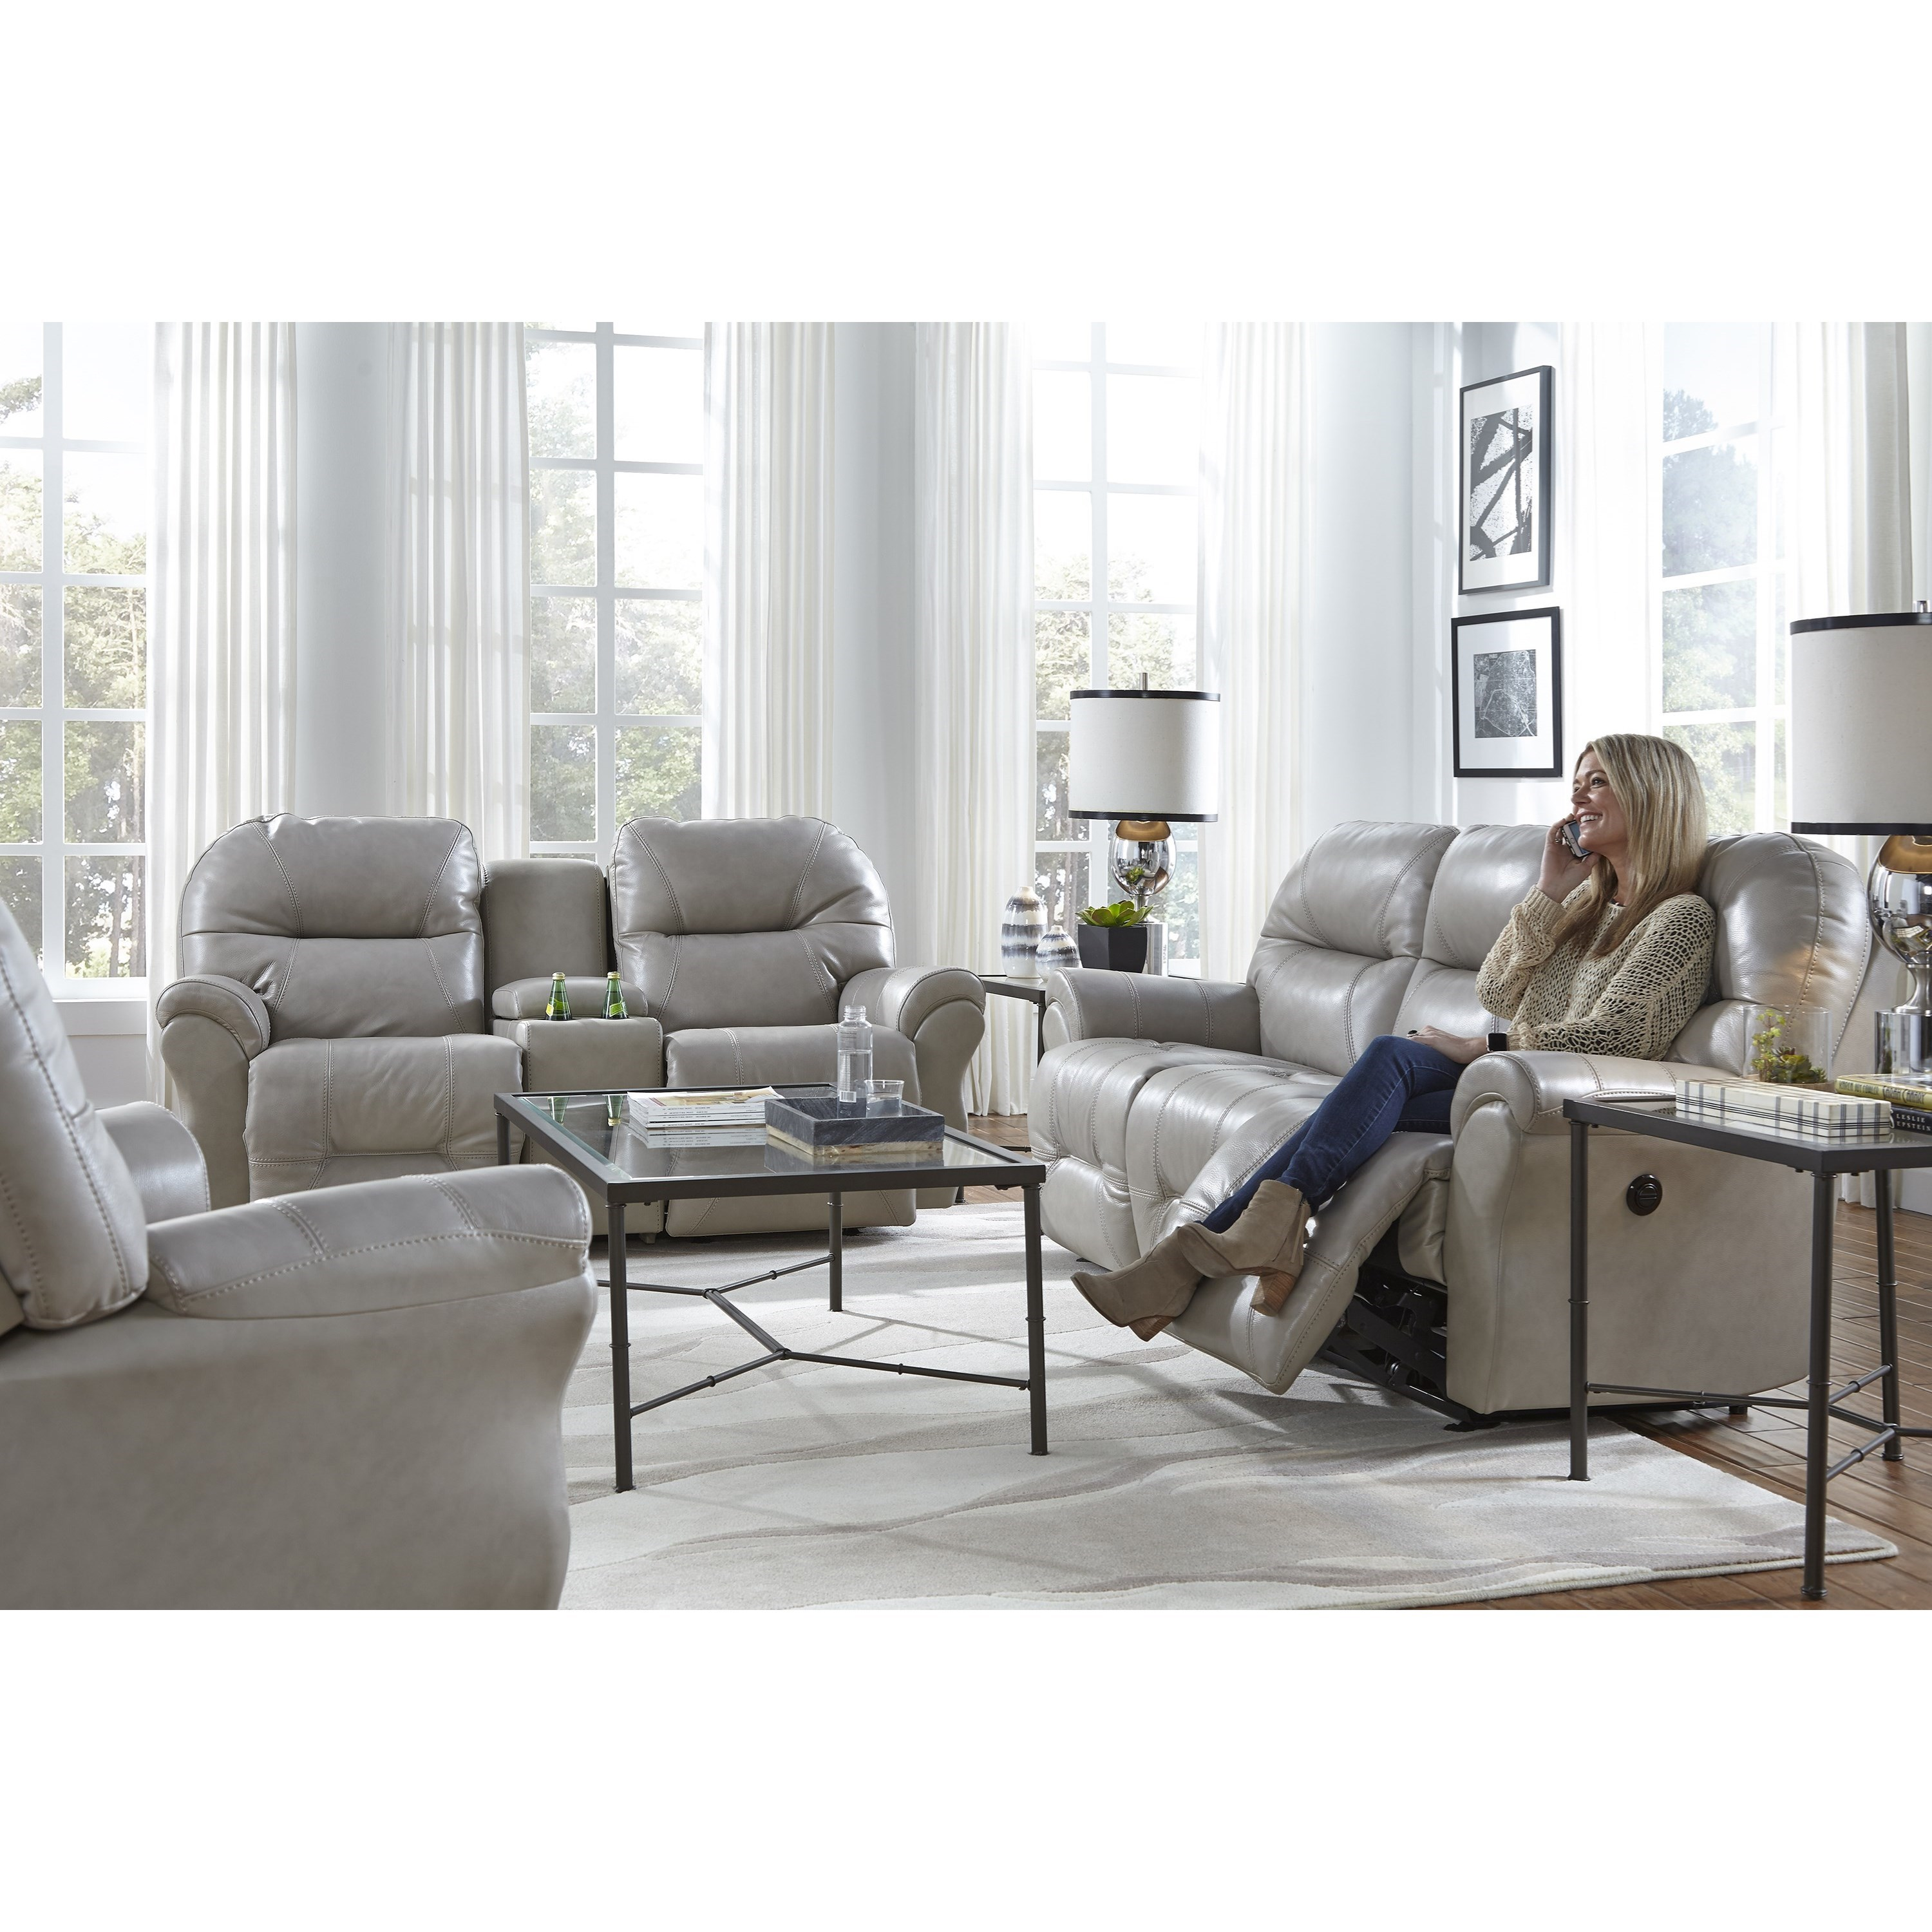 Bodie Reclining Living Room Group by Best Home Furnishings at Baer's Furniture